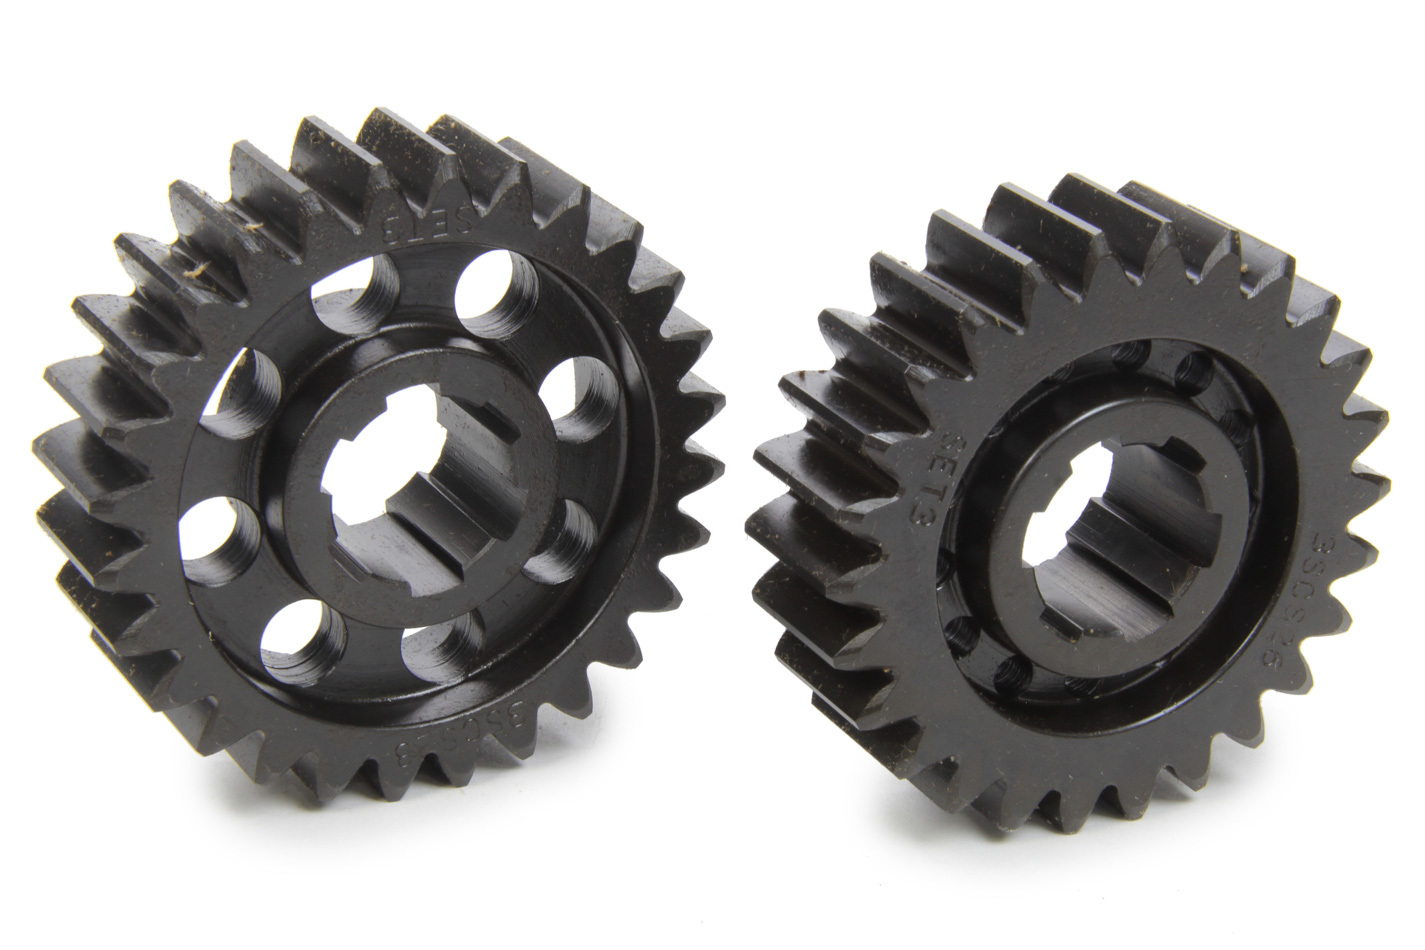 SCS Gears 63 Quick Change Gear Set, Professional, Set 63, 6 Spline, 4.11 Ratio 3.82 / 4.43, 4.33 Ratio 4.02 / 4.66, Steel, Each